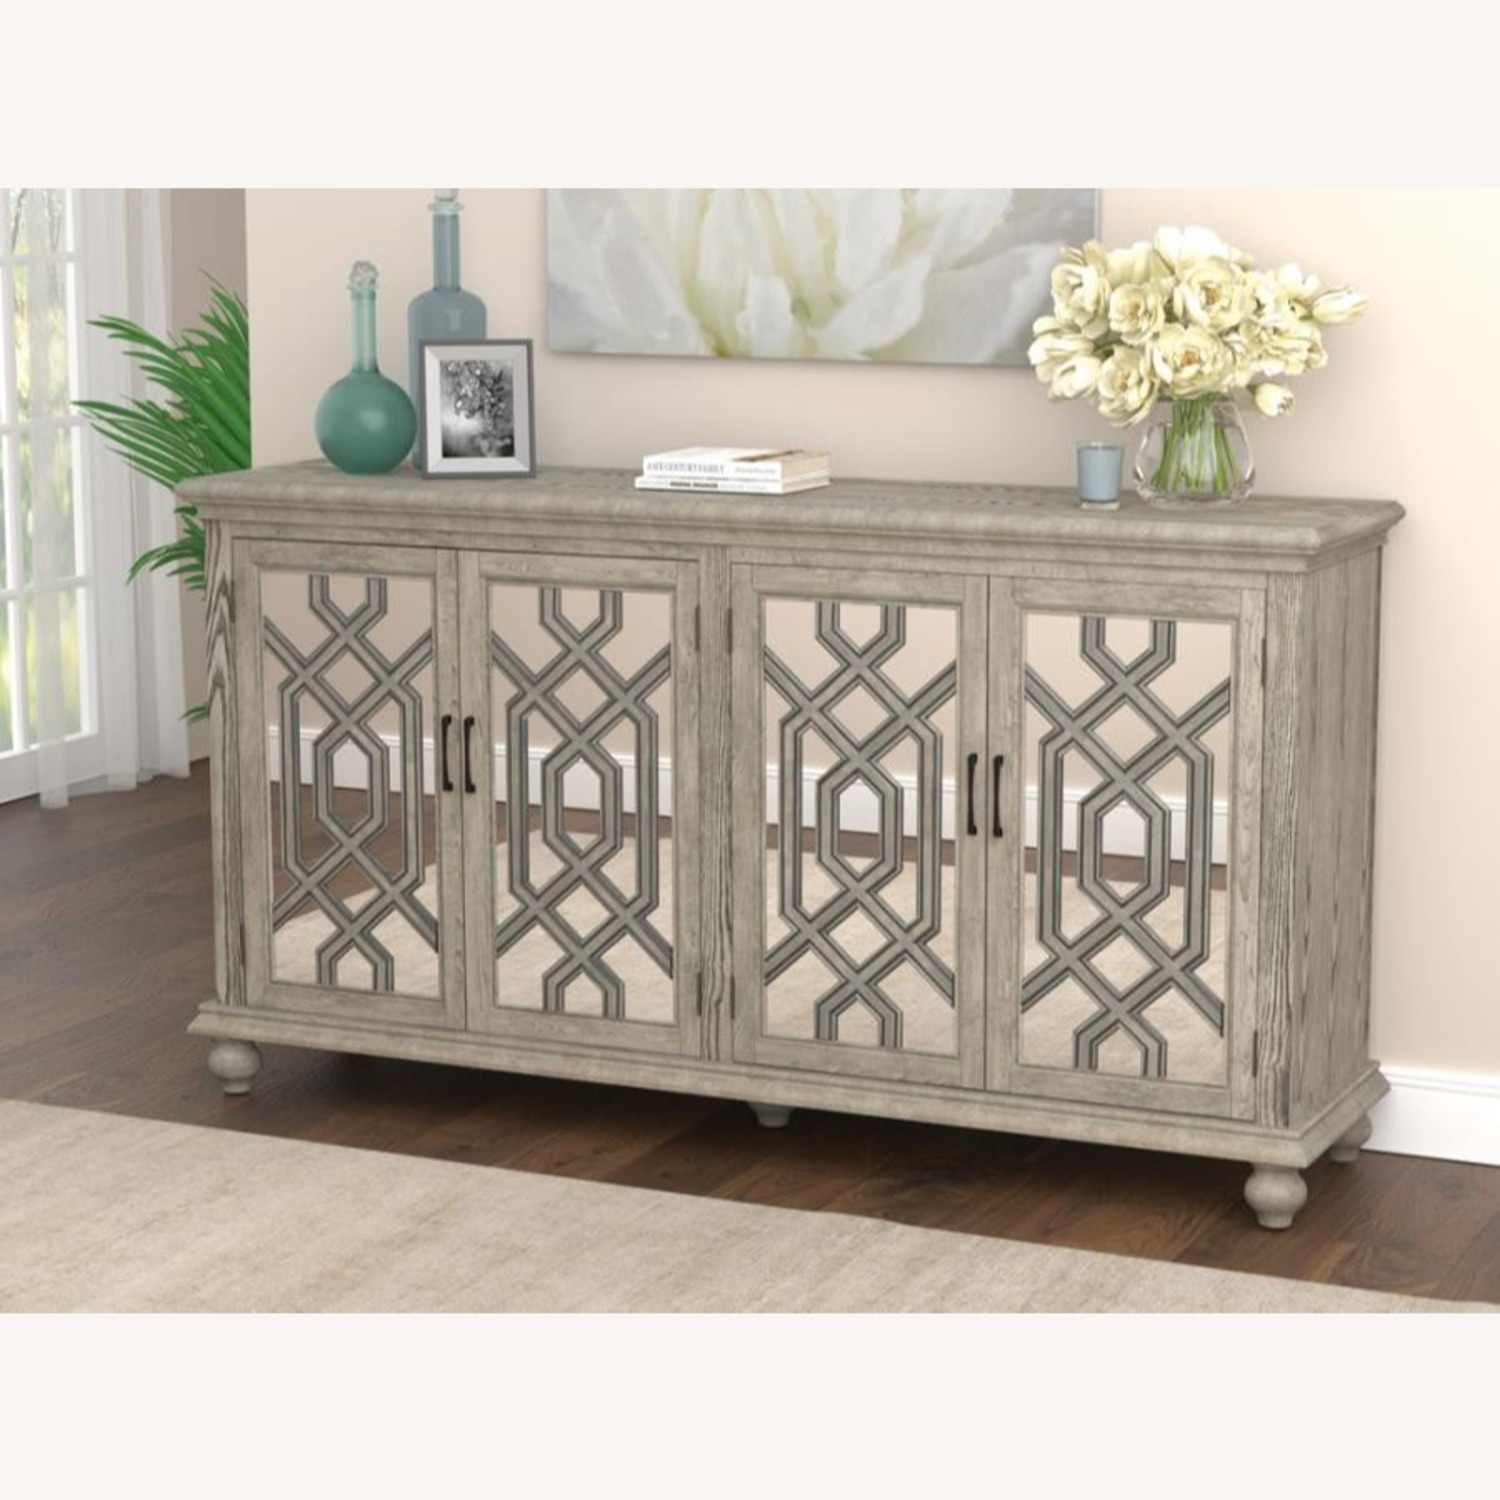 Accent Cabinet In Antique White W/ Bronze Details - image-5